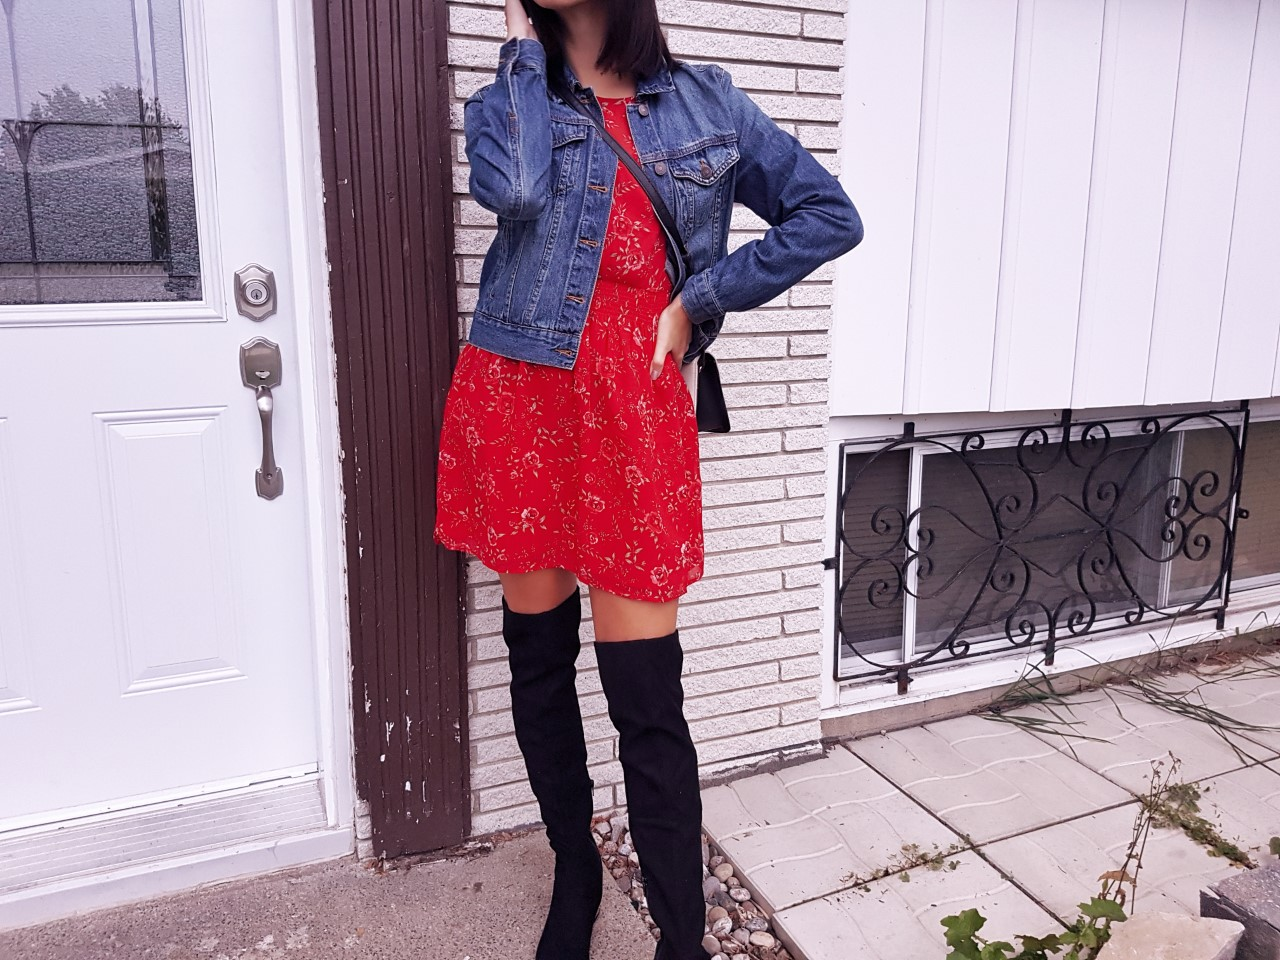 fashion, outfit, street style, fall fashion, fall style, over the knee boots, Aldo, dynamite dress, forever 21, high street style, styled by me, fashion blogger, Montreal